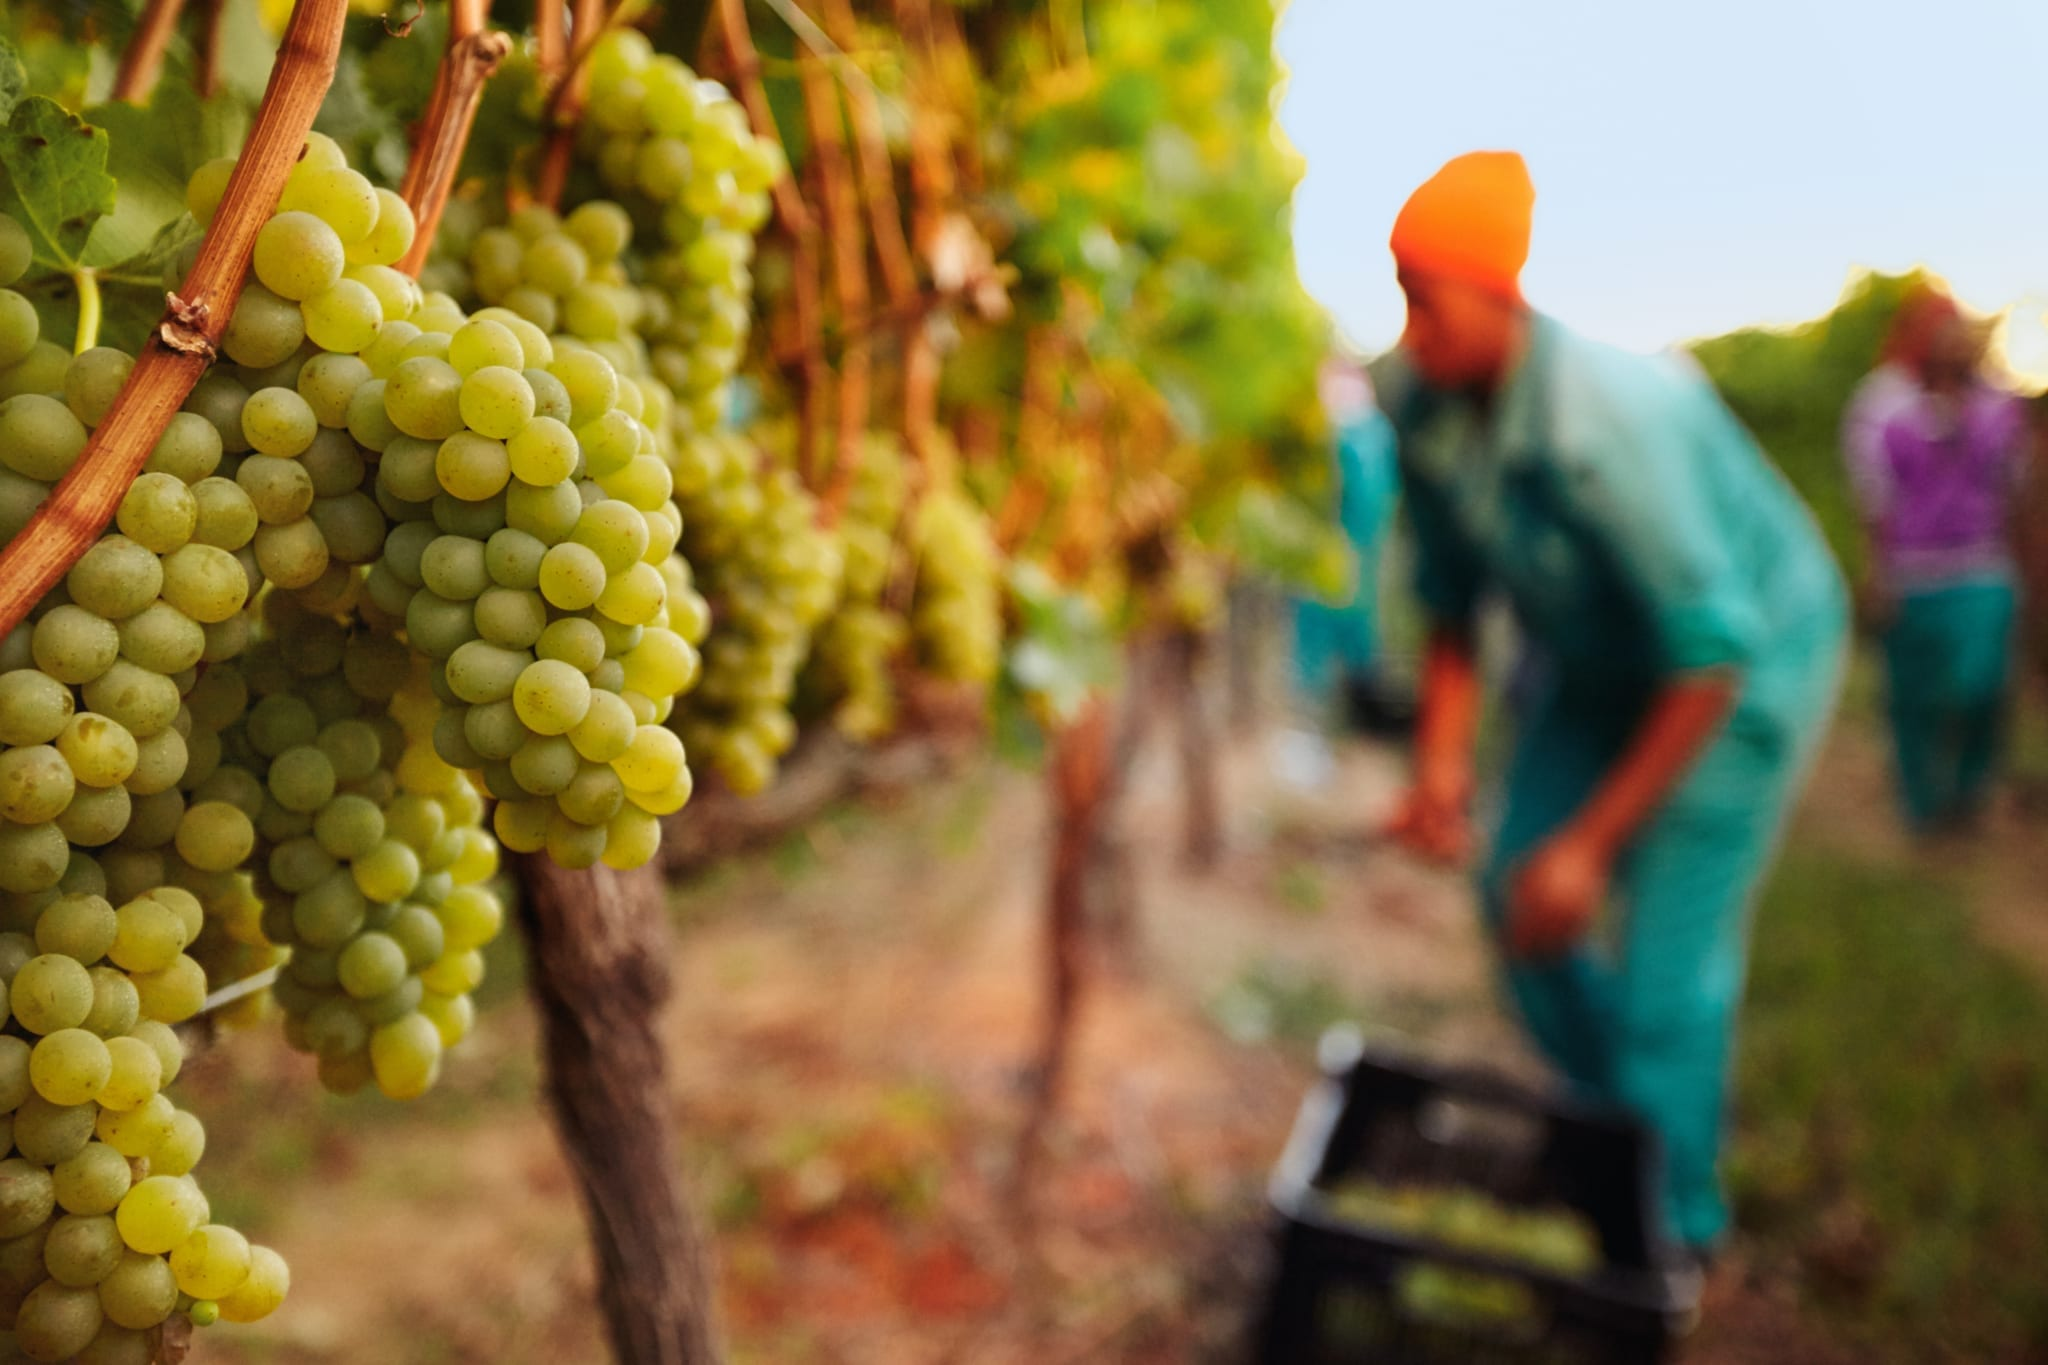 Bunch of grapes on vines at vineyard with grape picker working in background.